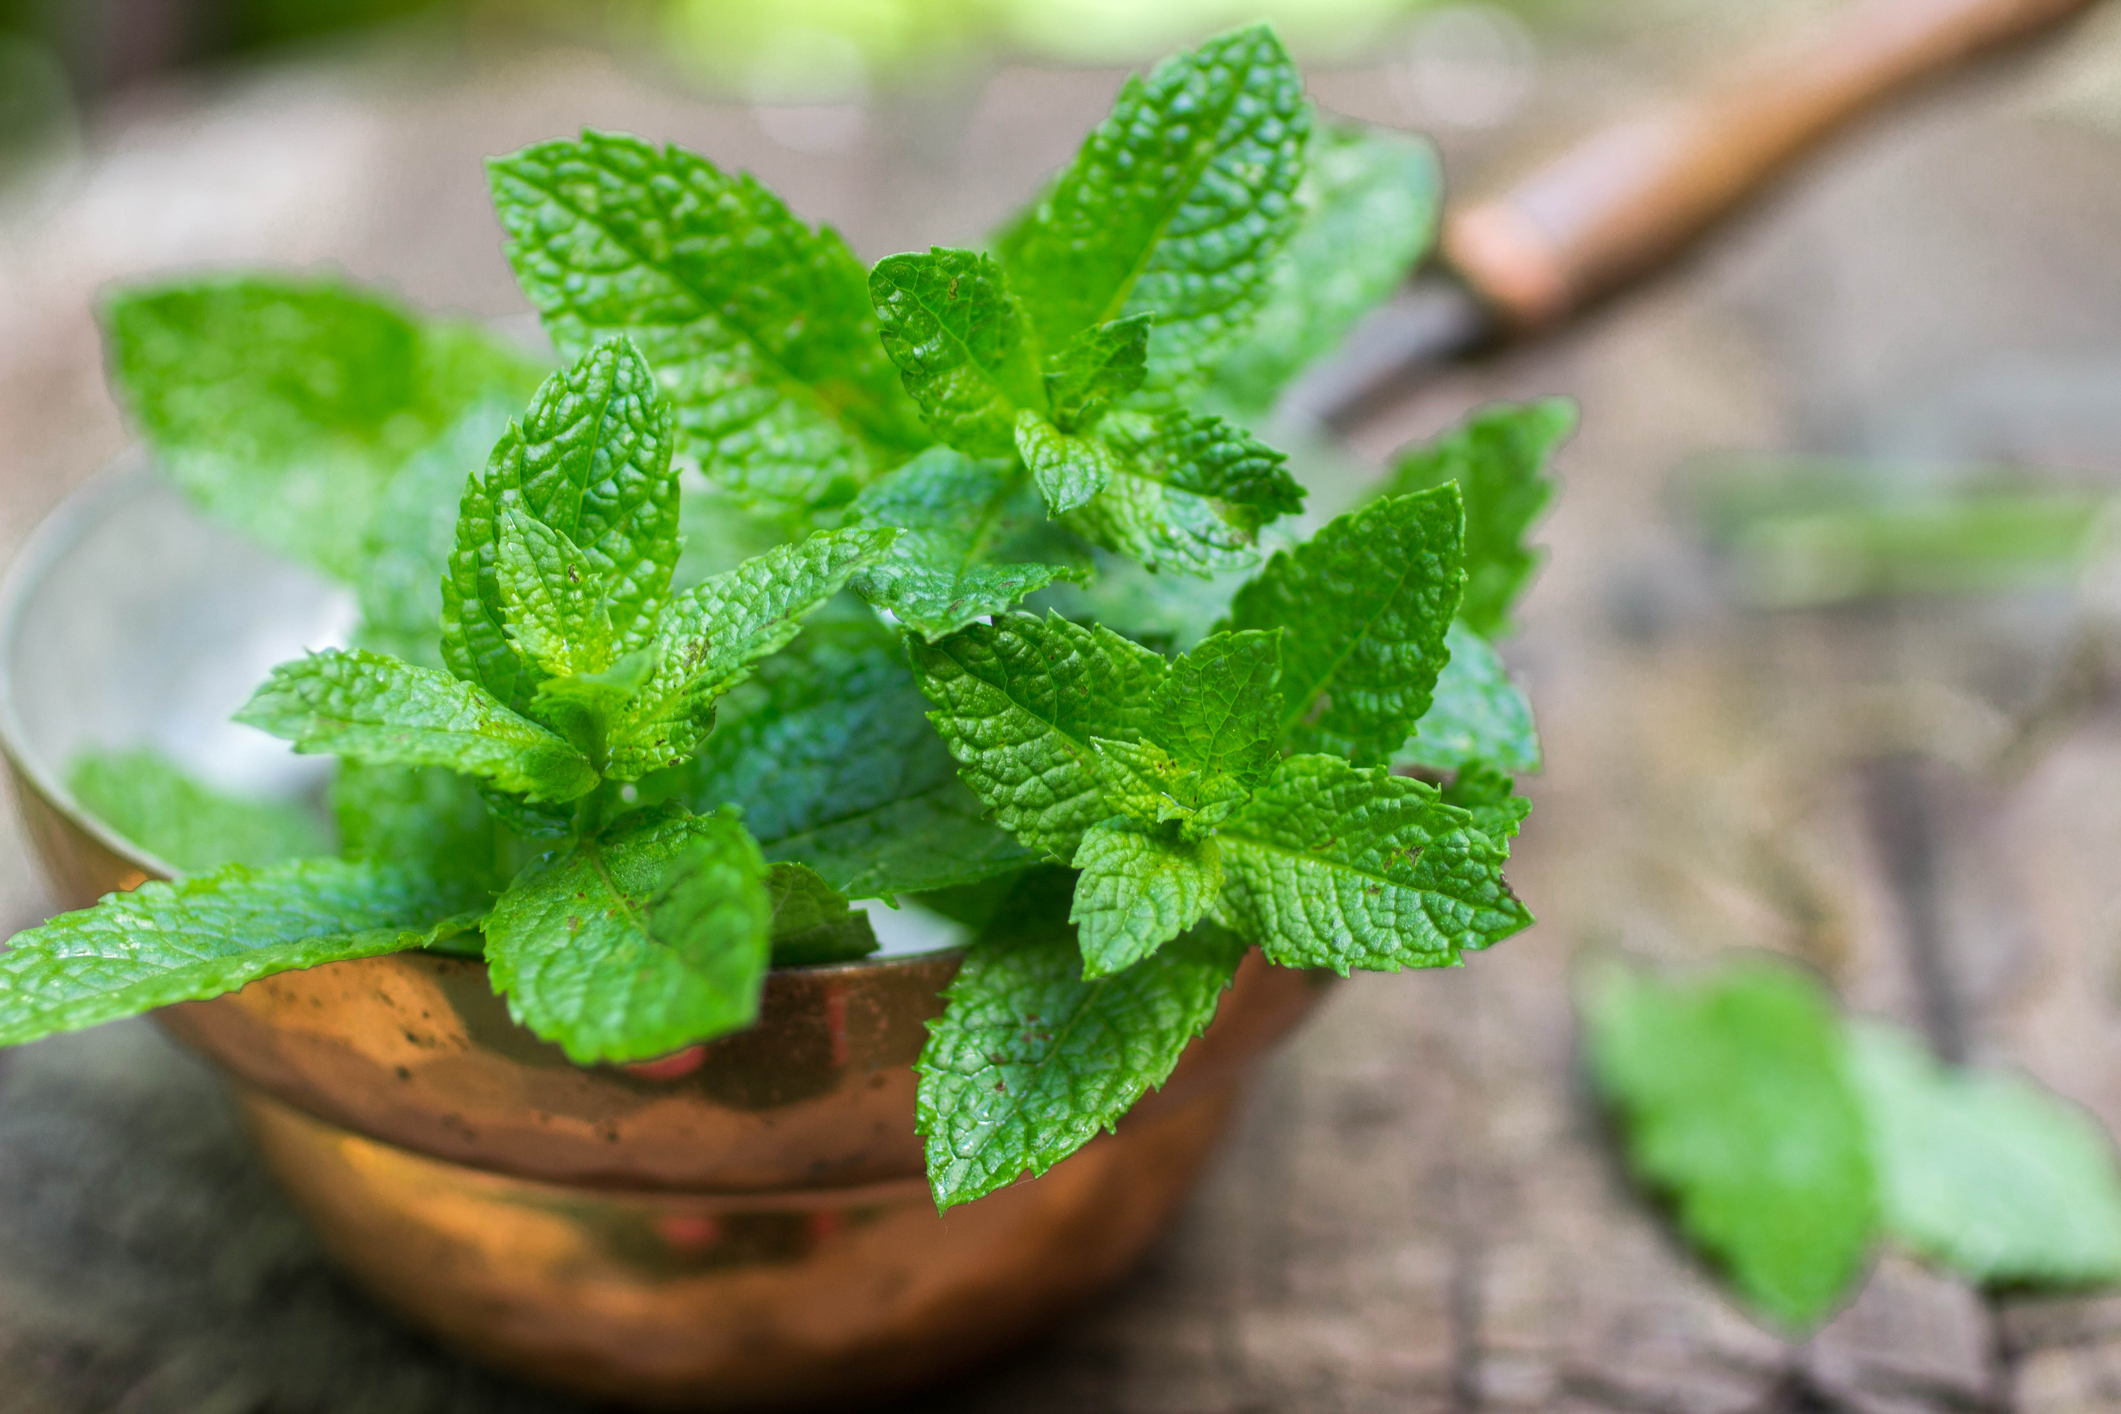 Mint - Just the thought of the aroma and the taste of fresh mint leaves feels like a blast of cool air.  We use only the actual leaves picked straight off the plant.  No artificial flavors here.